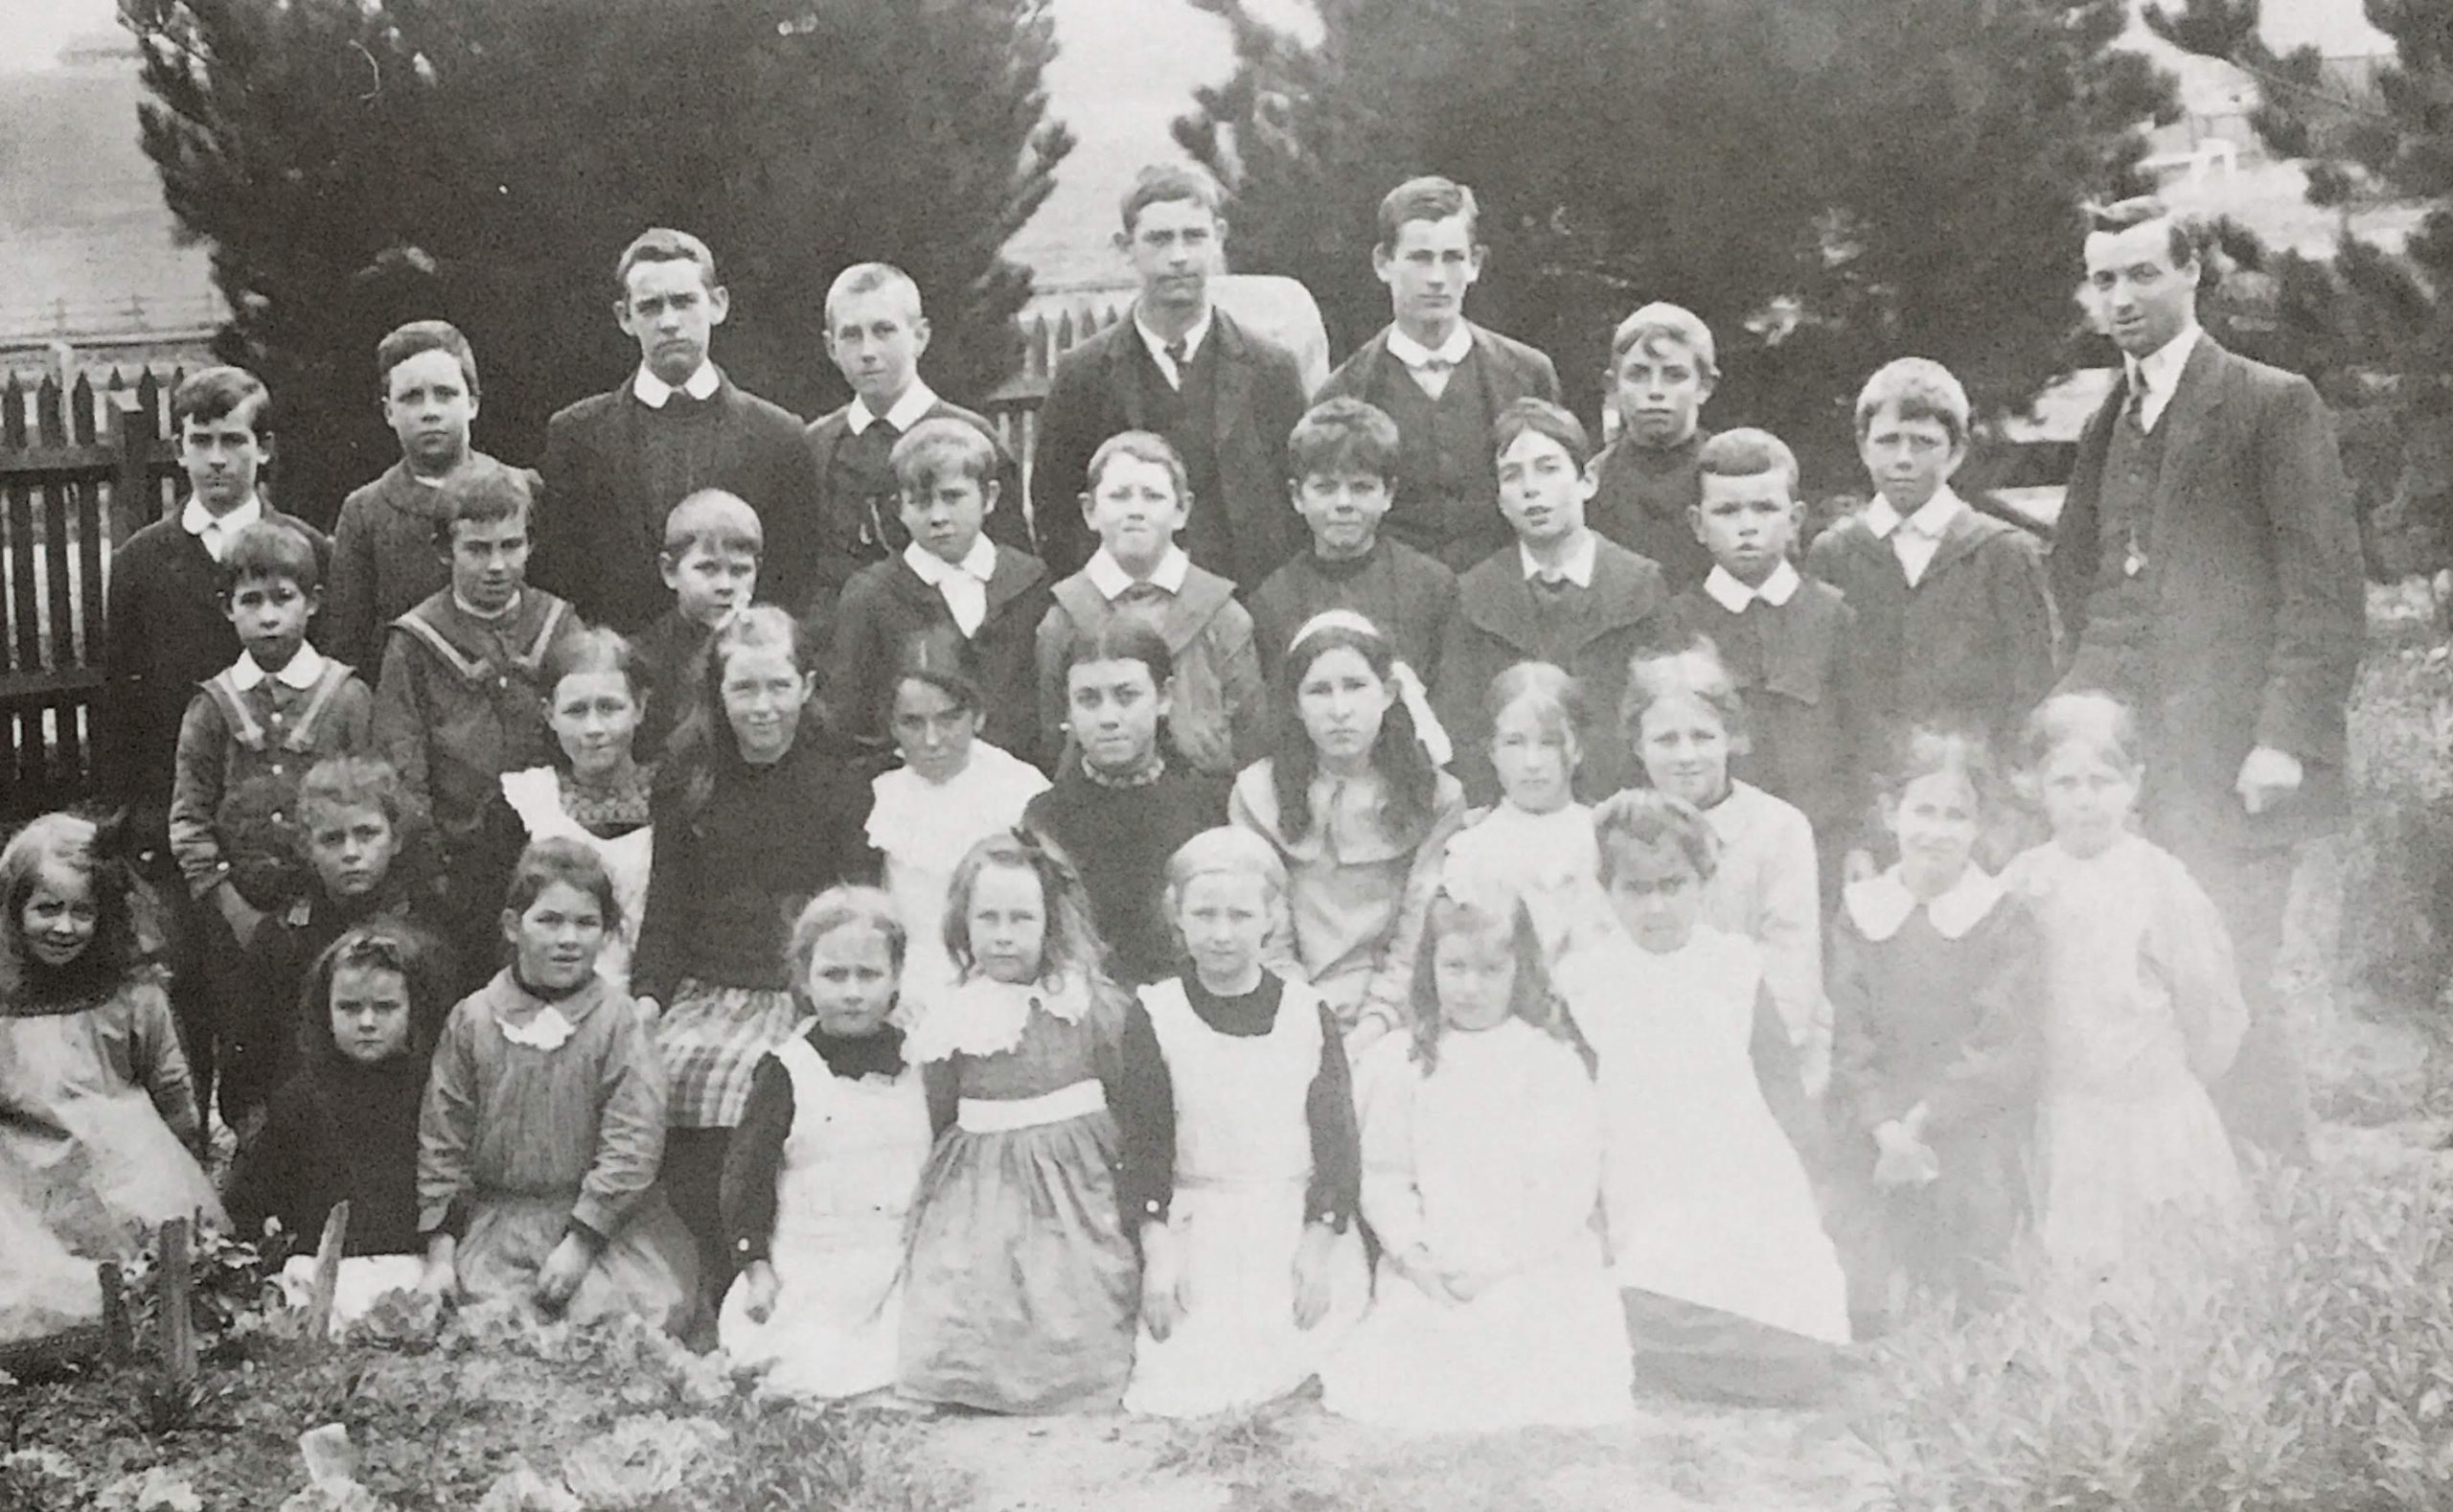 Yan Yean State School No. 697, c 1913.  Back Row: Don McKenzie, Ken McPhee, George Wilson, Myles Merrilees, Glady Olney, Eric McKenzie, Jack Hancorne. Third Row: George McIntosh, Jack McKenzie, Percy Bradford, Chester Draper, Harold Boyes, Roy Smith, Archie Andrews, Tom Draper, Mr Babbage. Second Row: Sally Hancorne, Phoebe Andrews, Cathie Draper, Jessie Olney, Lily Wilson, Sarah Boyes, Myrtle McIntosh, Eve McIntosh, Hazel Hurrey, Viola McLaughlin, Dora Merrilees. Front Row: Evelyn Welsh, Dorrie Hurrey, Muriel Draper, Grace Wilson, Lily Draper, Muriel Olney, Dorothy Boyes.  My father had started his school days at Hazel Glen private school in Chapel Lane, which is now part of the Doreen area. The School was run by Mr. and Mrs. Smith. My father and some other members of the family had each to take six pence to school on a Monday. If there was no money, they were sent home. A State School No. 1666 was opened at Arthurs Creek in 1876.  Yan Yean became a State School in 1873